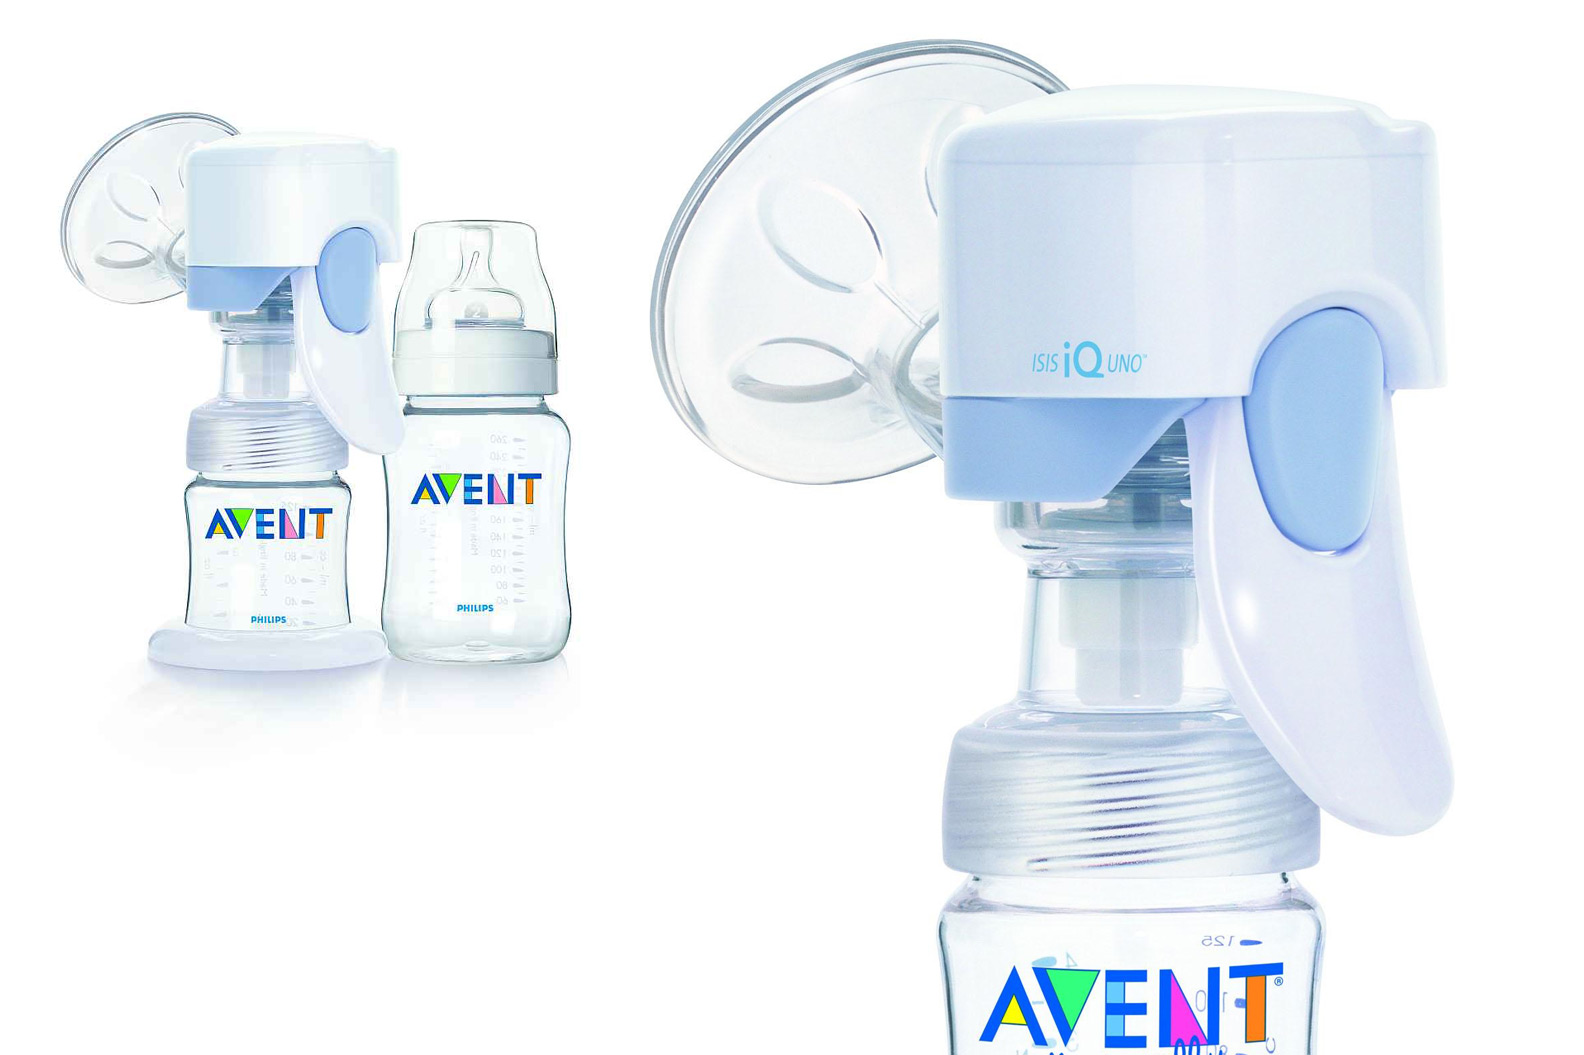 PhilipsAvent-Breastpump-TulettDesign